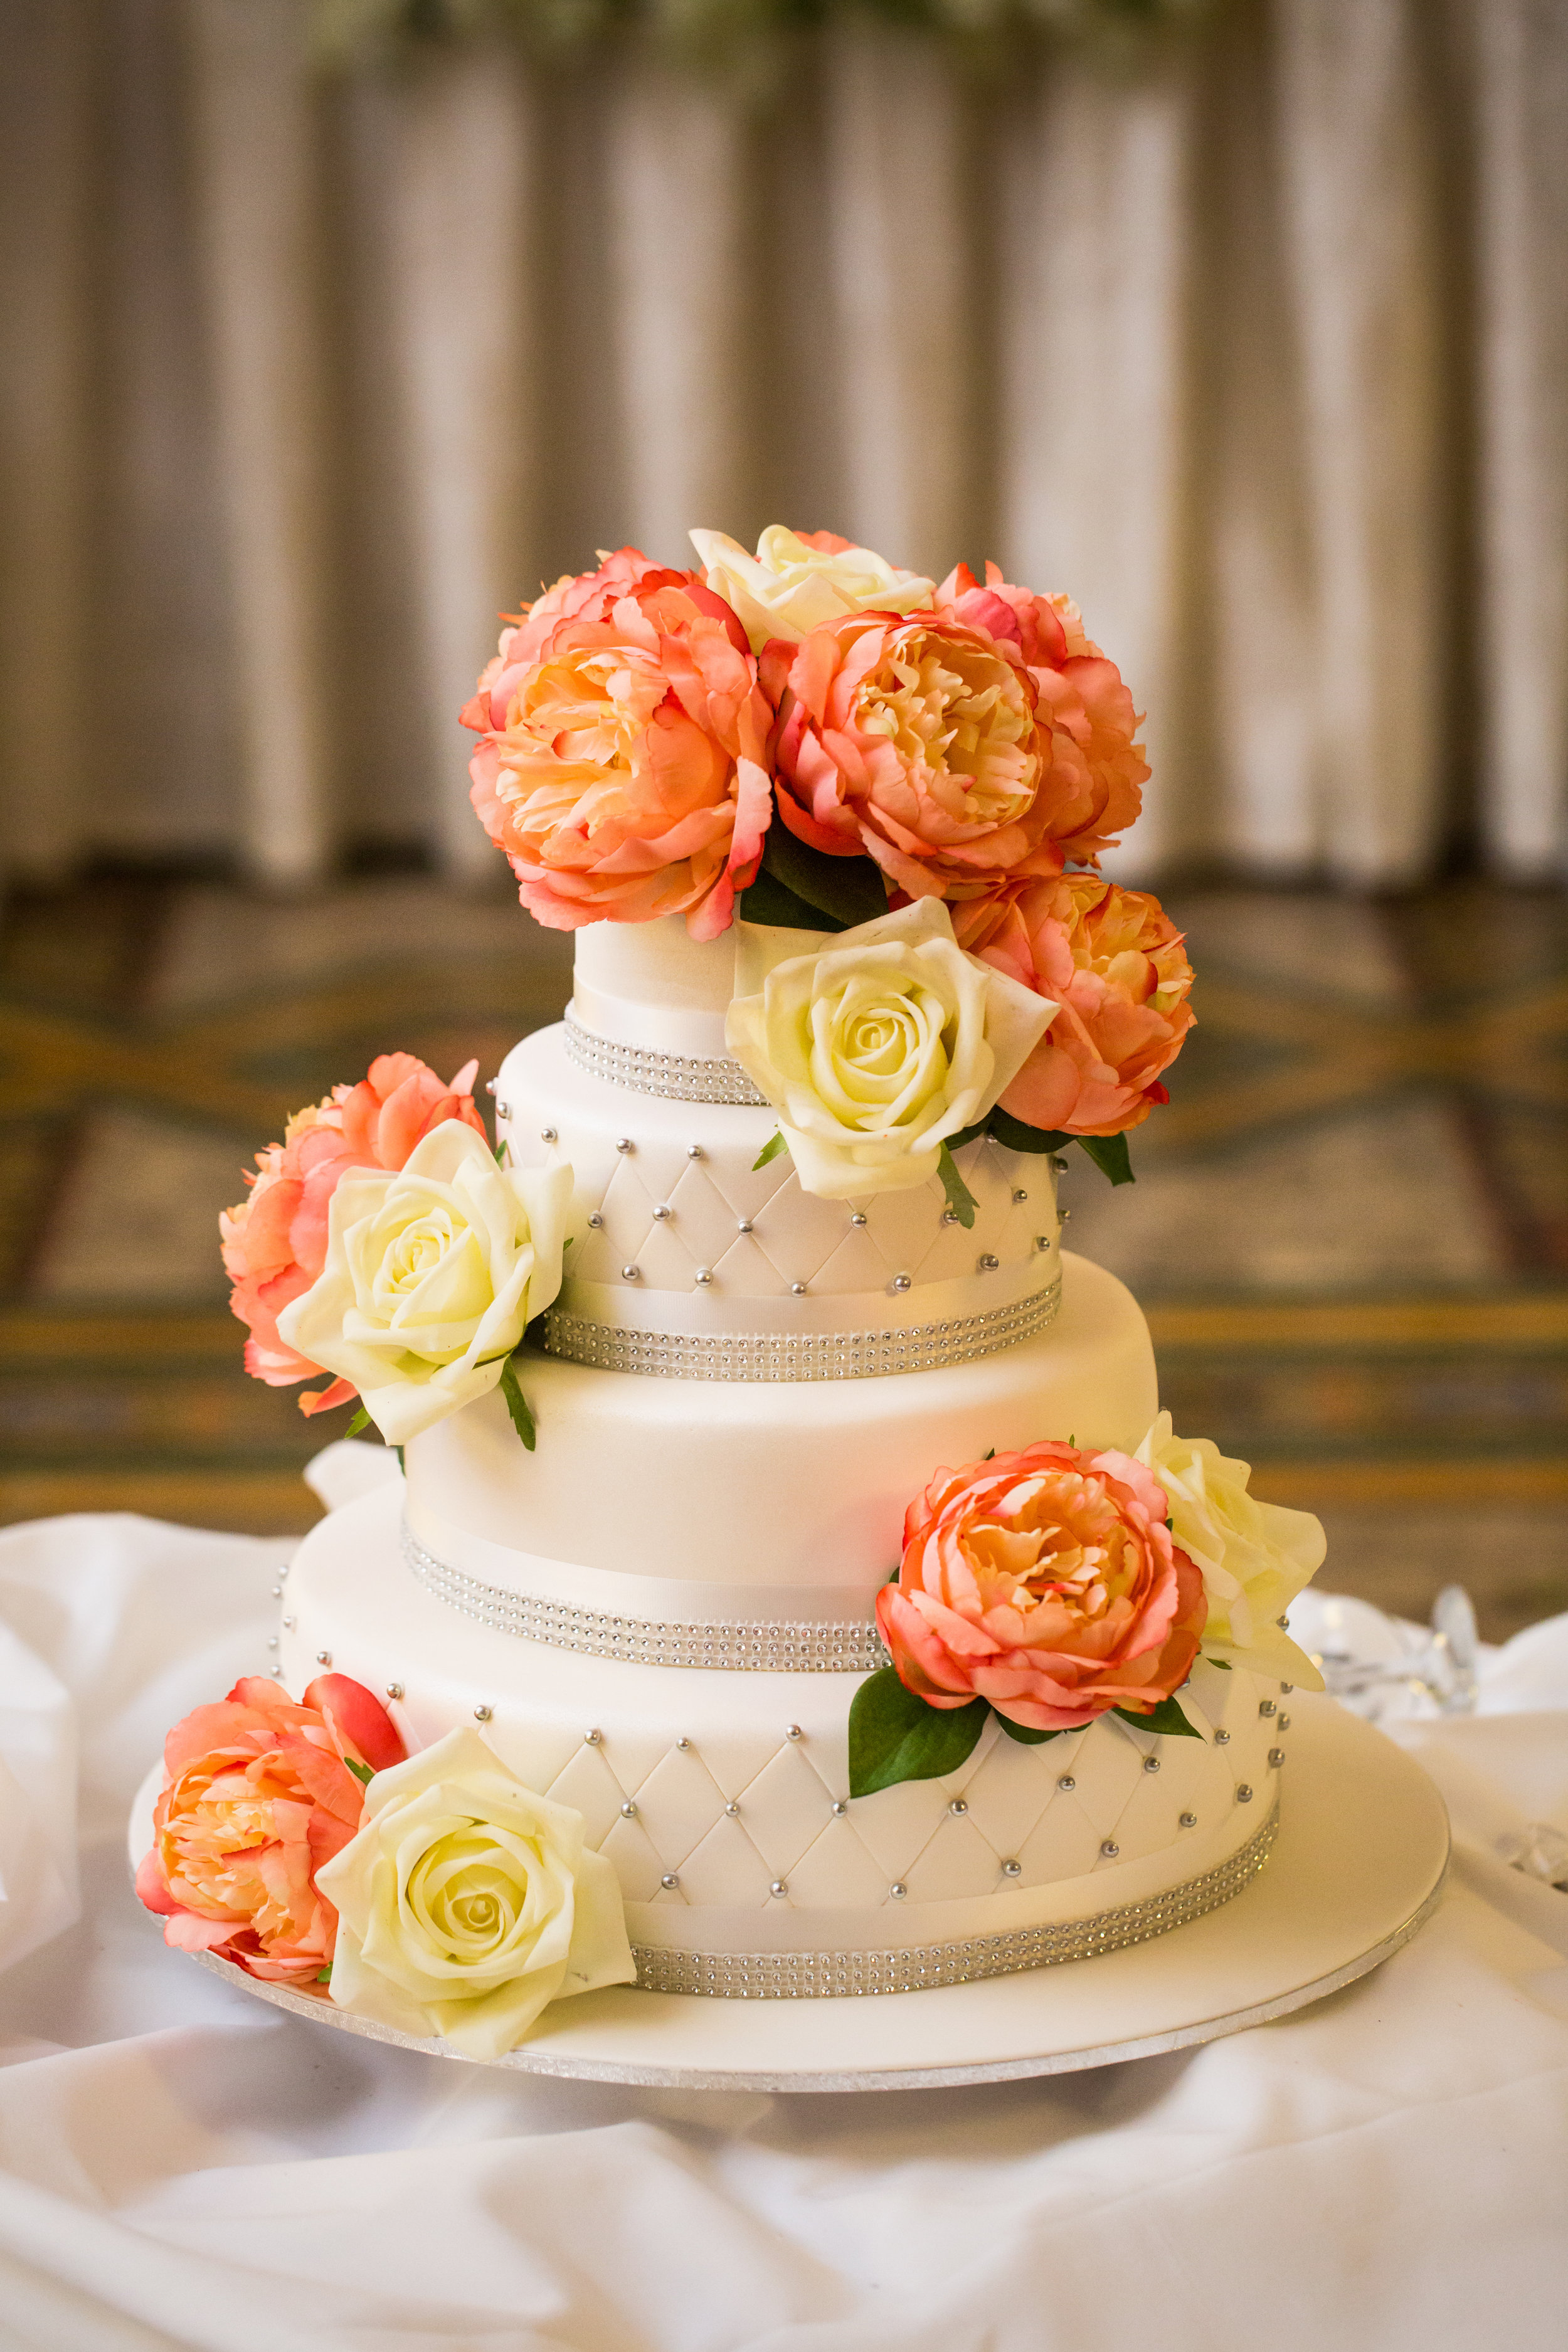 Quilted Wedding Cake with pink flowers